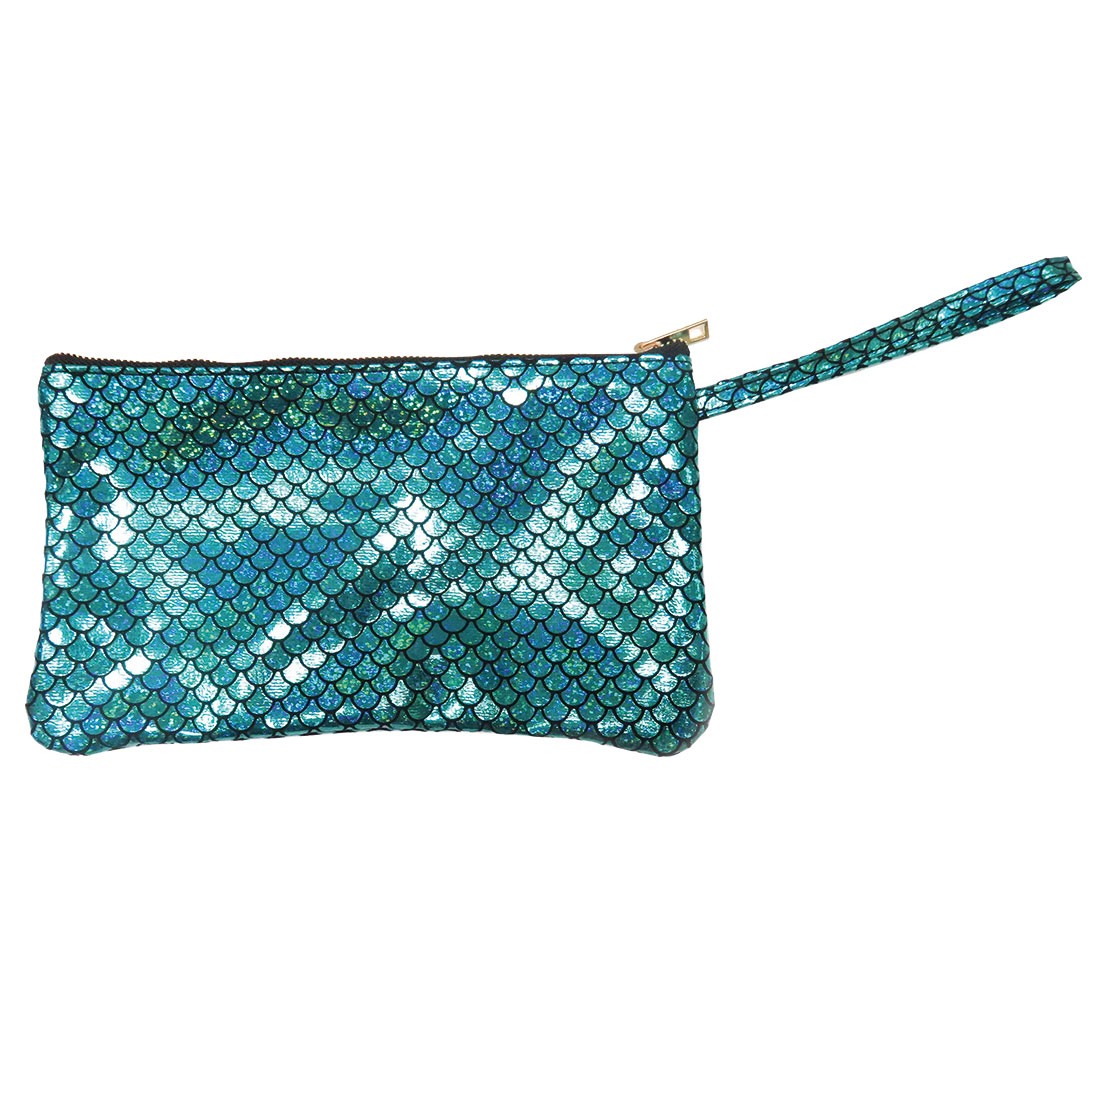 POCHETTE – Mermaid BLU & SILVER